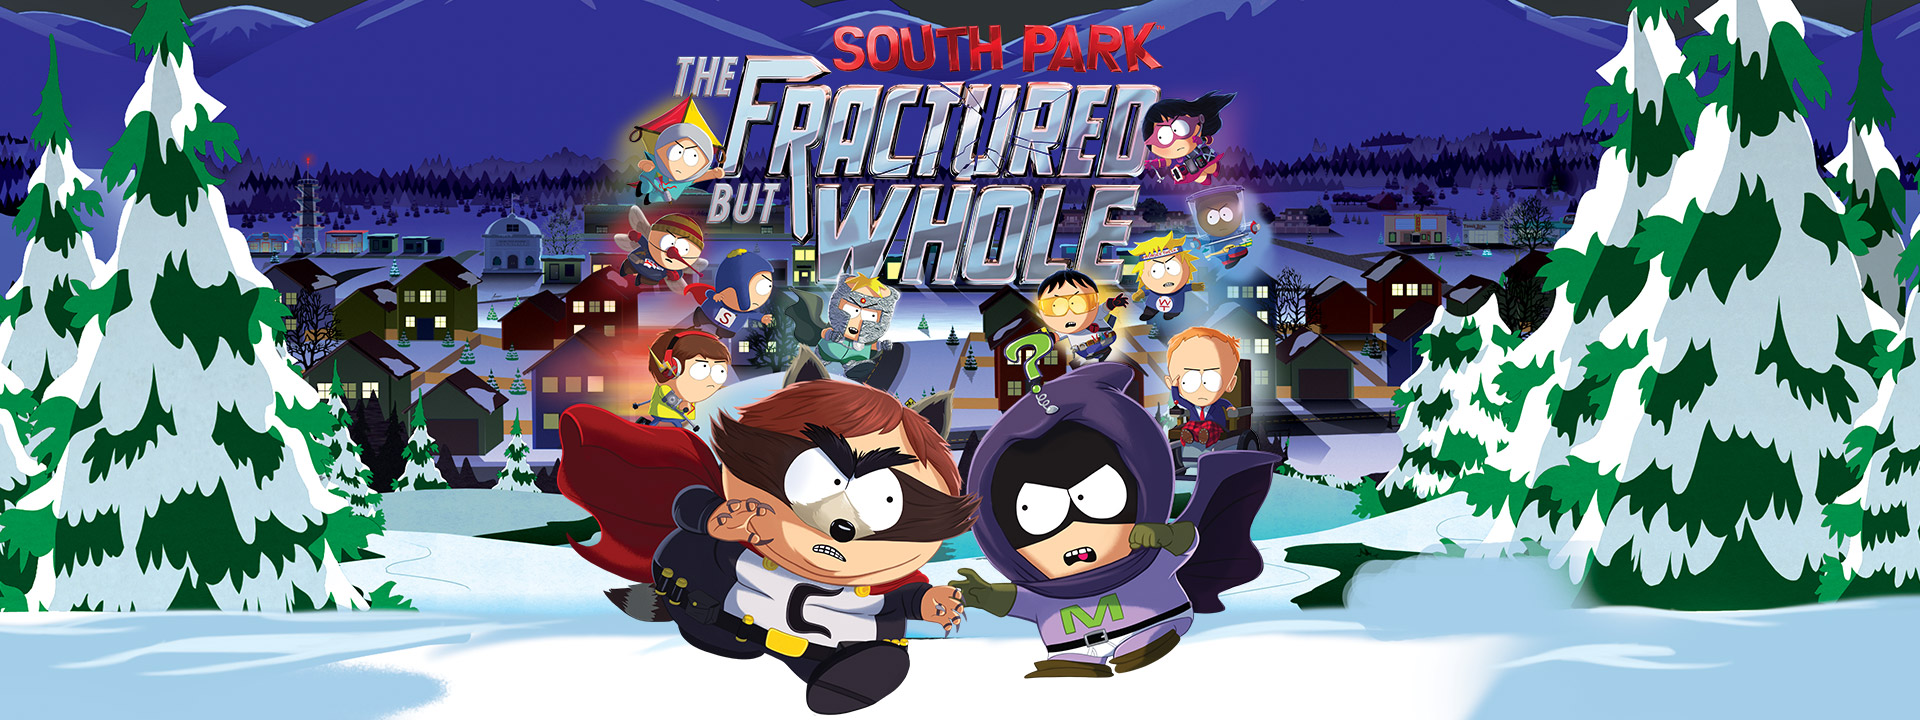 South Park: The Fractured But Whole APK Free Download - Android Apps Cracked